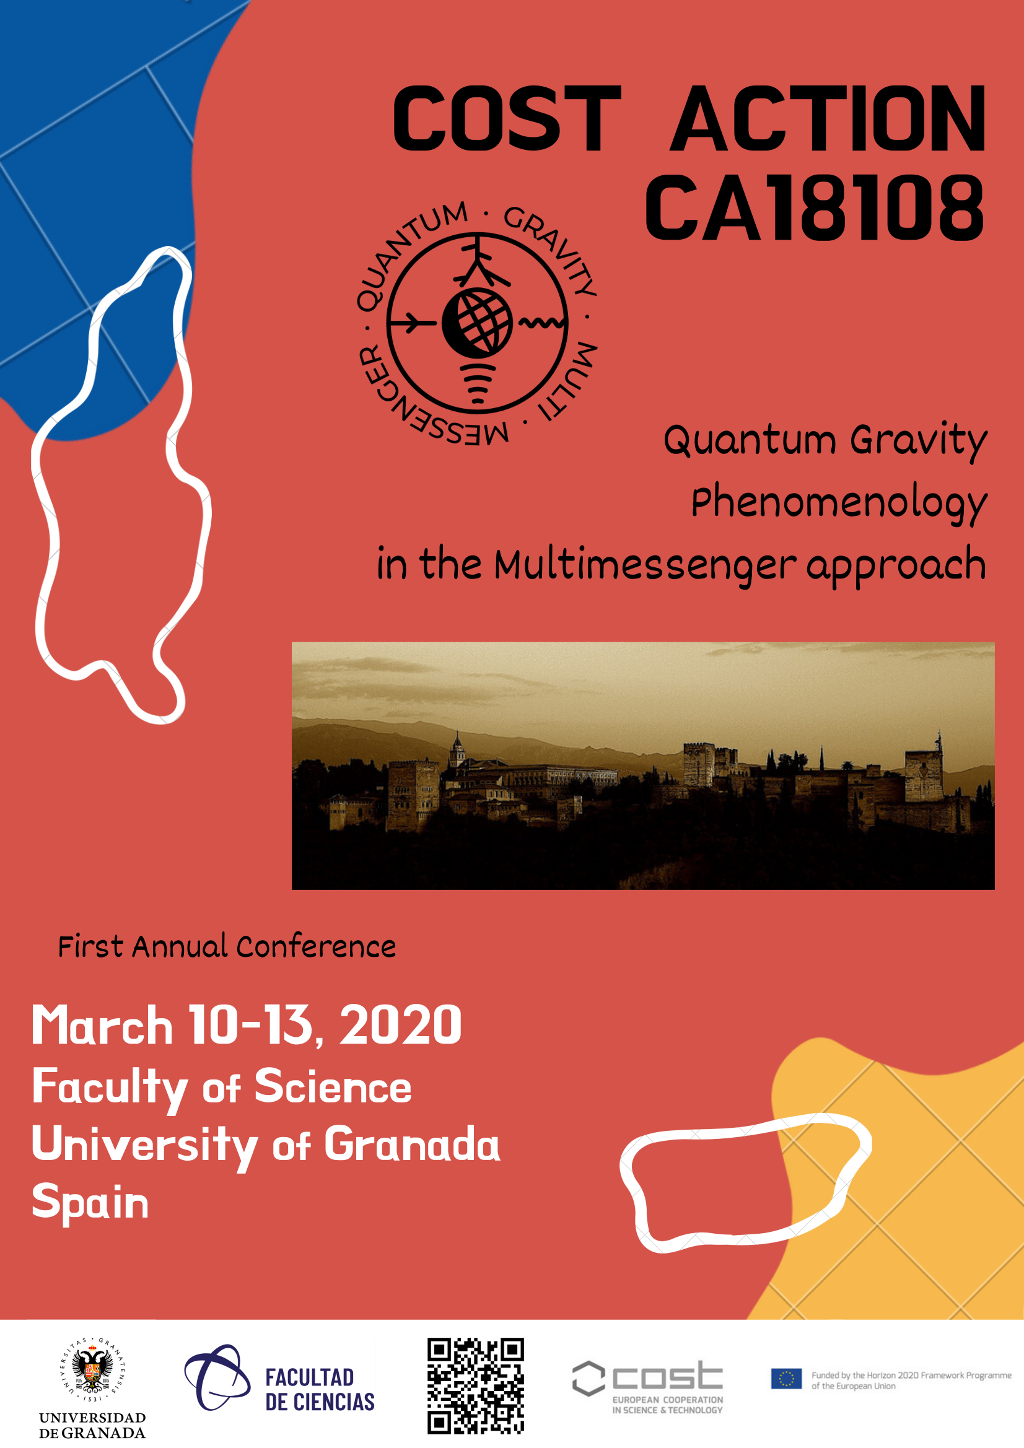 Quantum Gravity Phenomenology in the Multimessenger approach